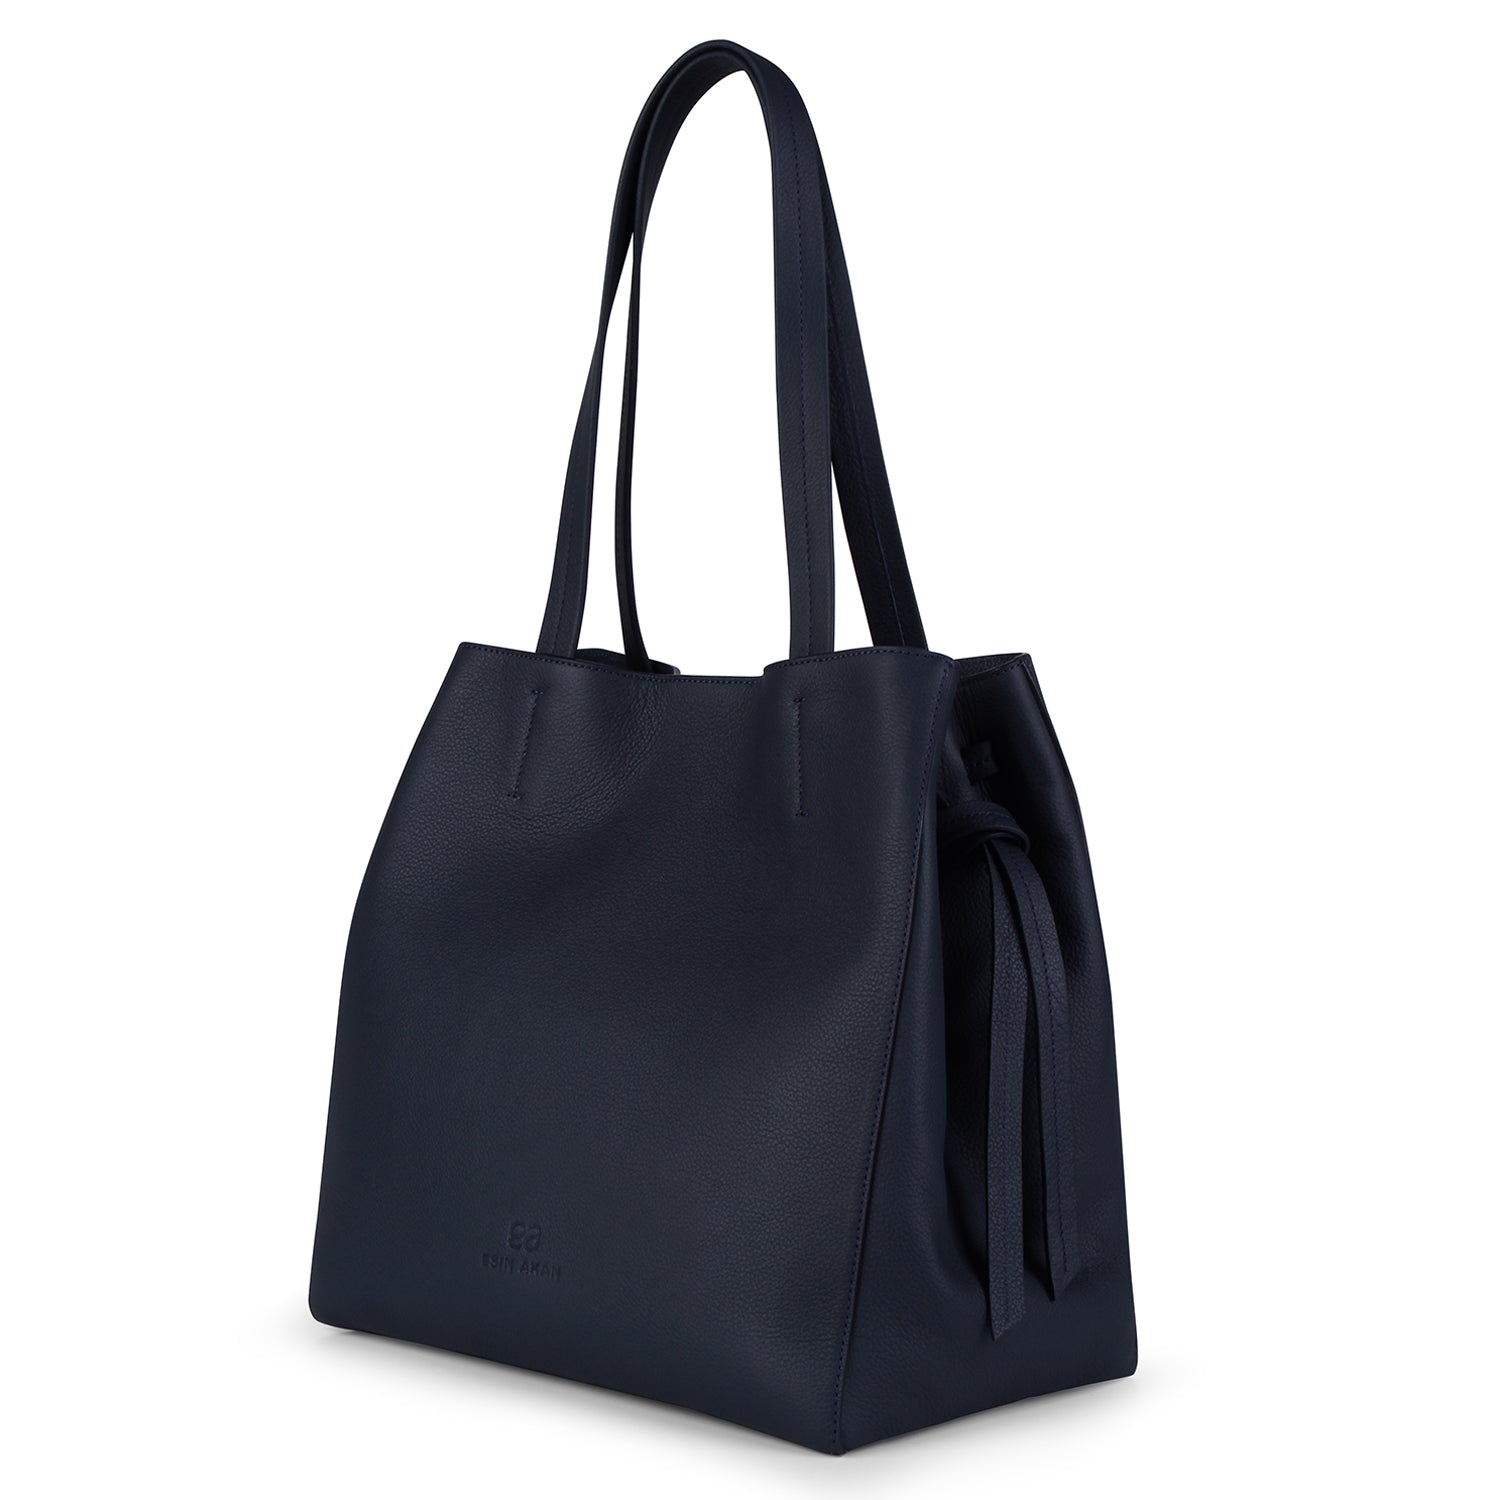 An expandable leather tote bag for women in navy, side image.